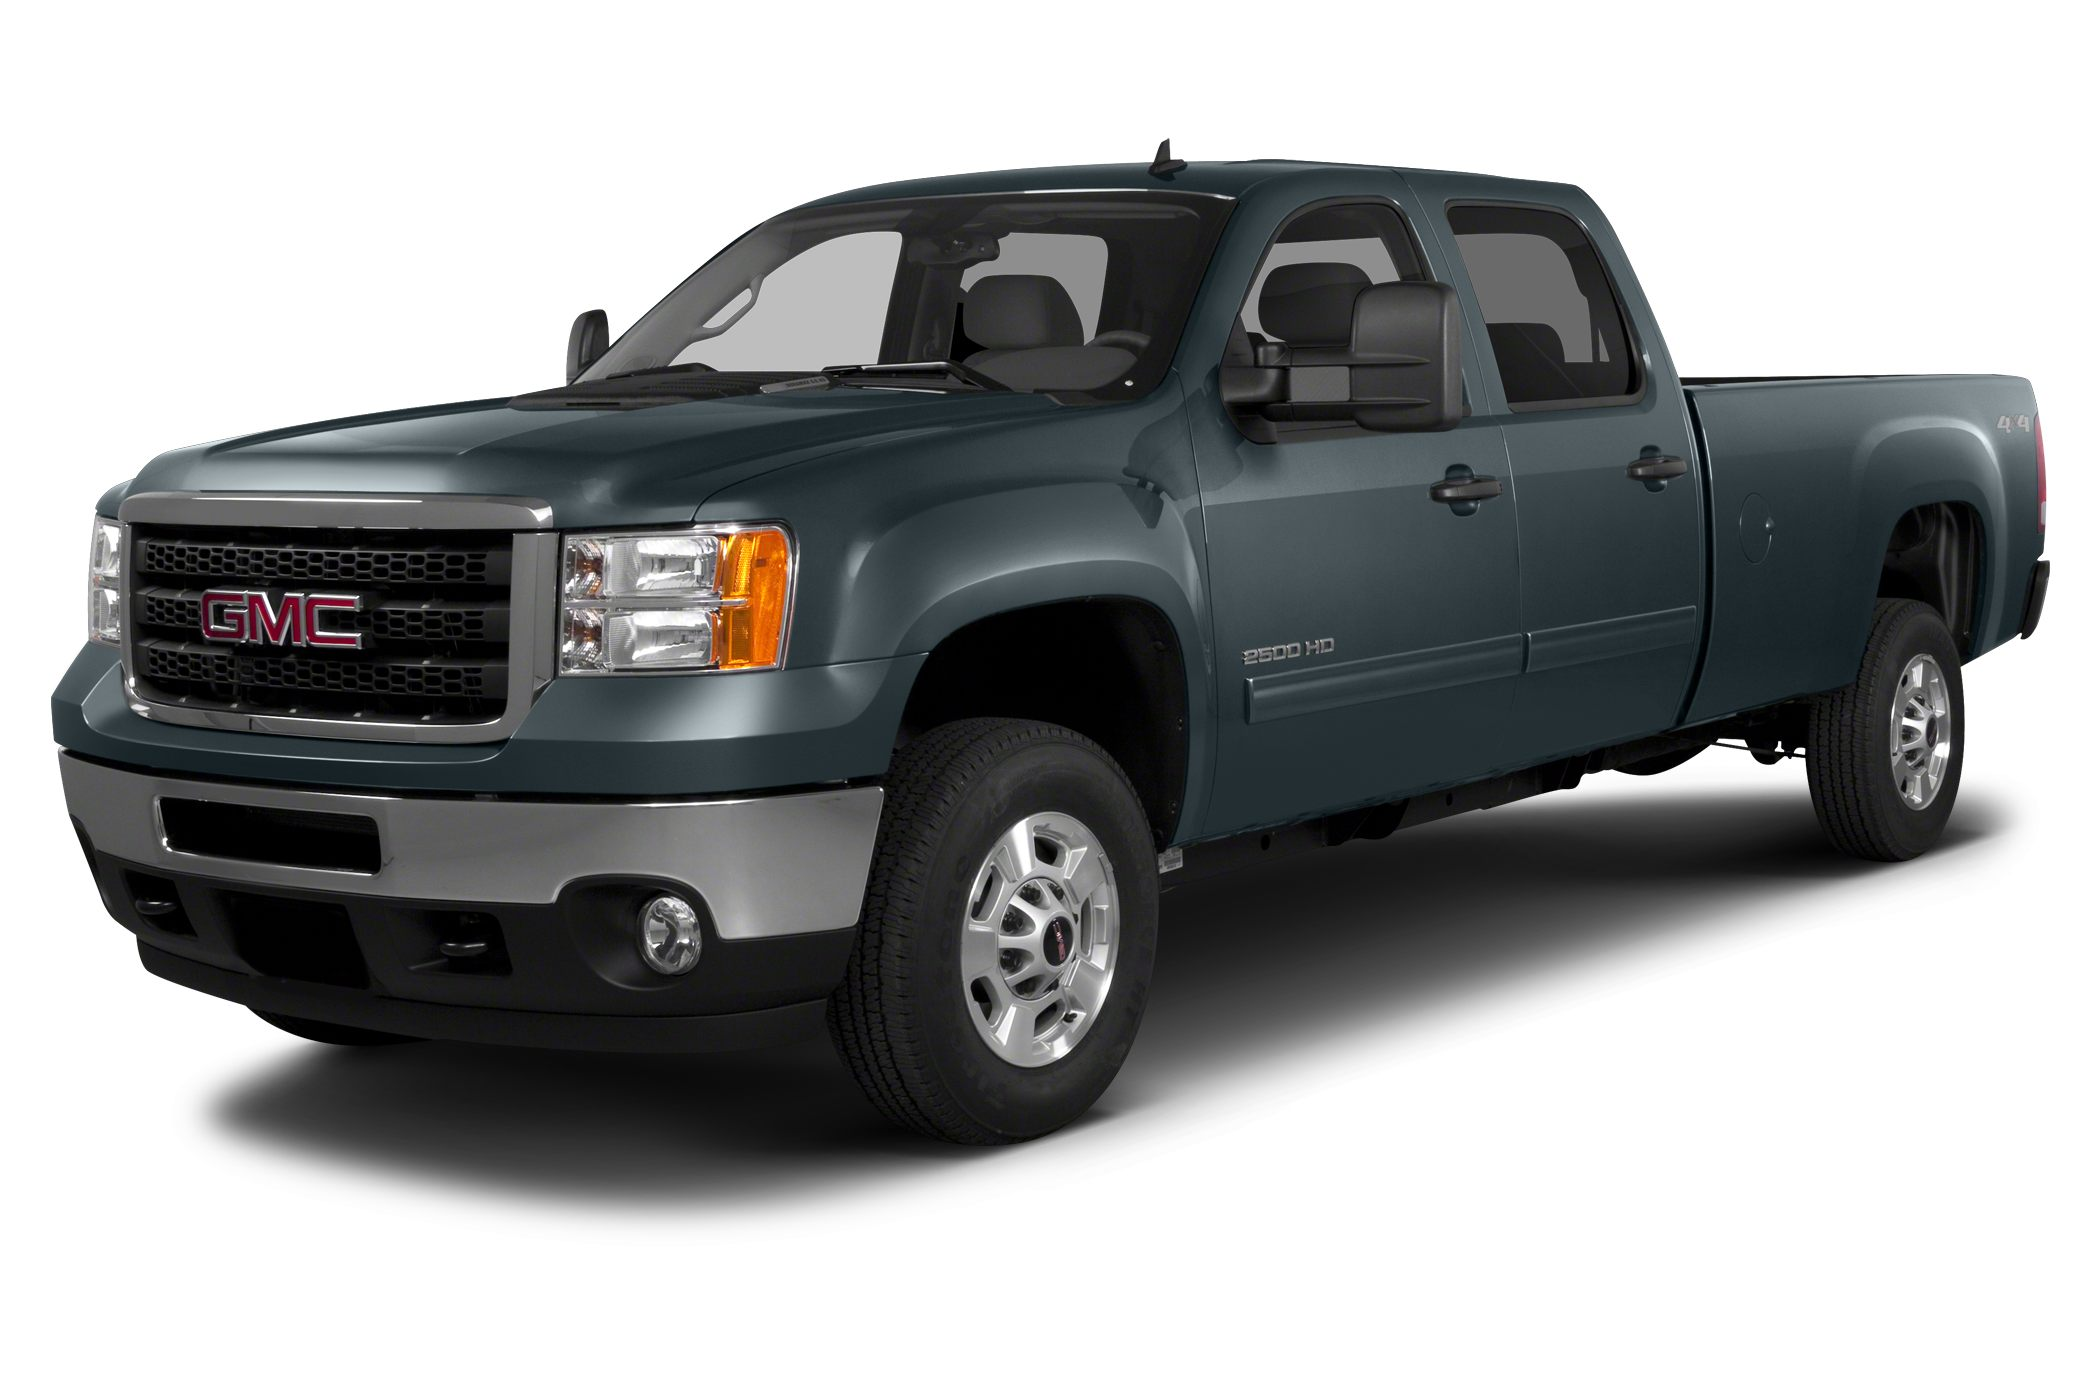 2014 GMC Sierra 2500 SLT Crew Cab Pickup for sale in West Branch for $0 with 0 miles